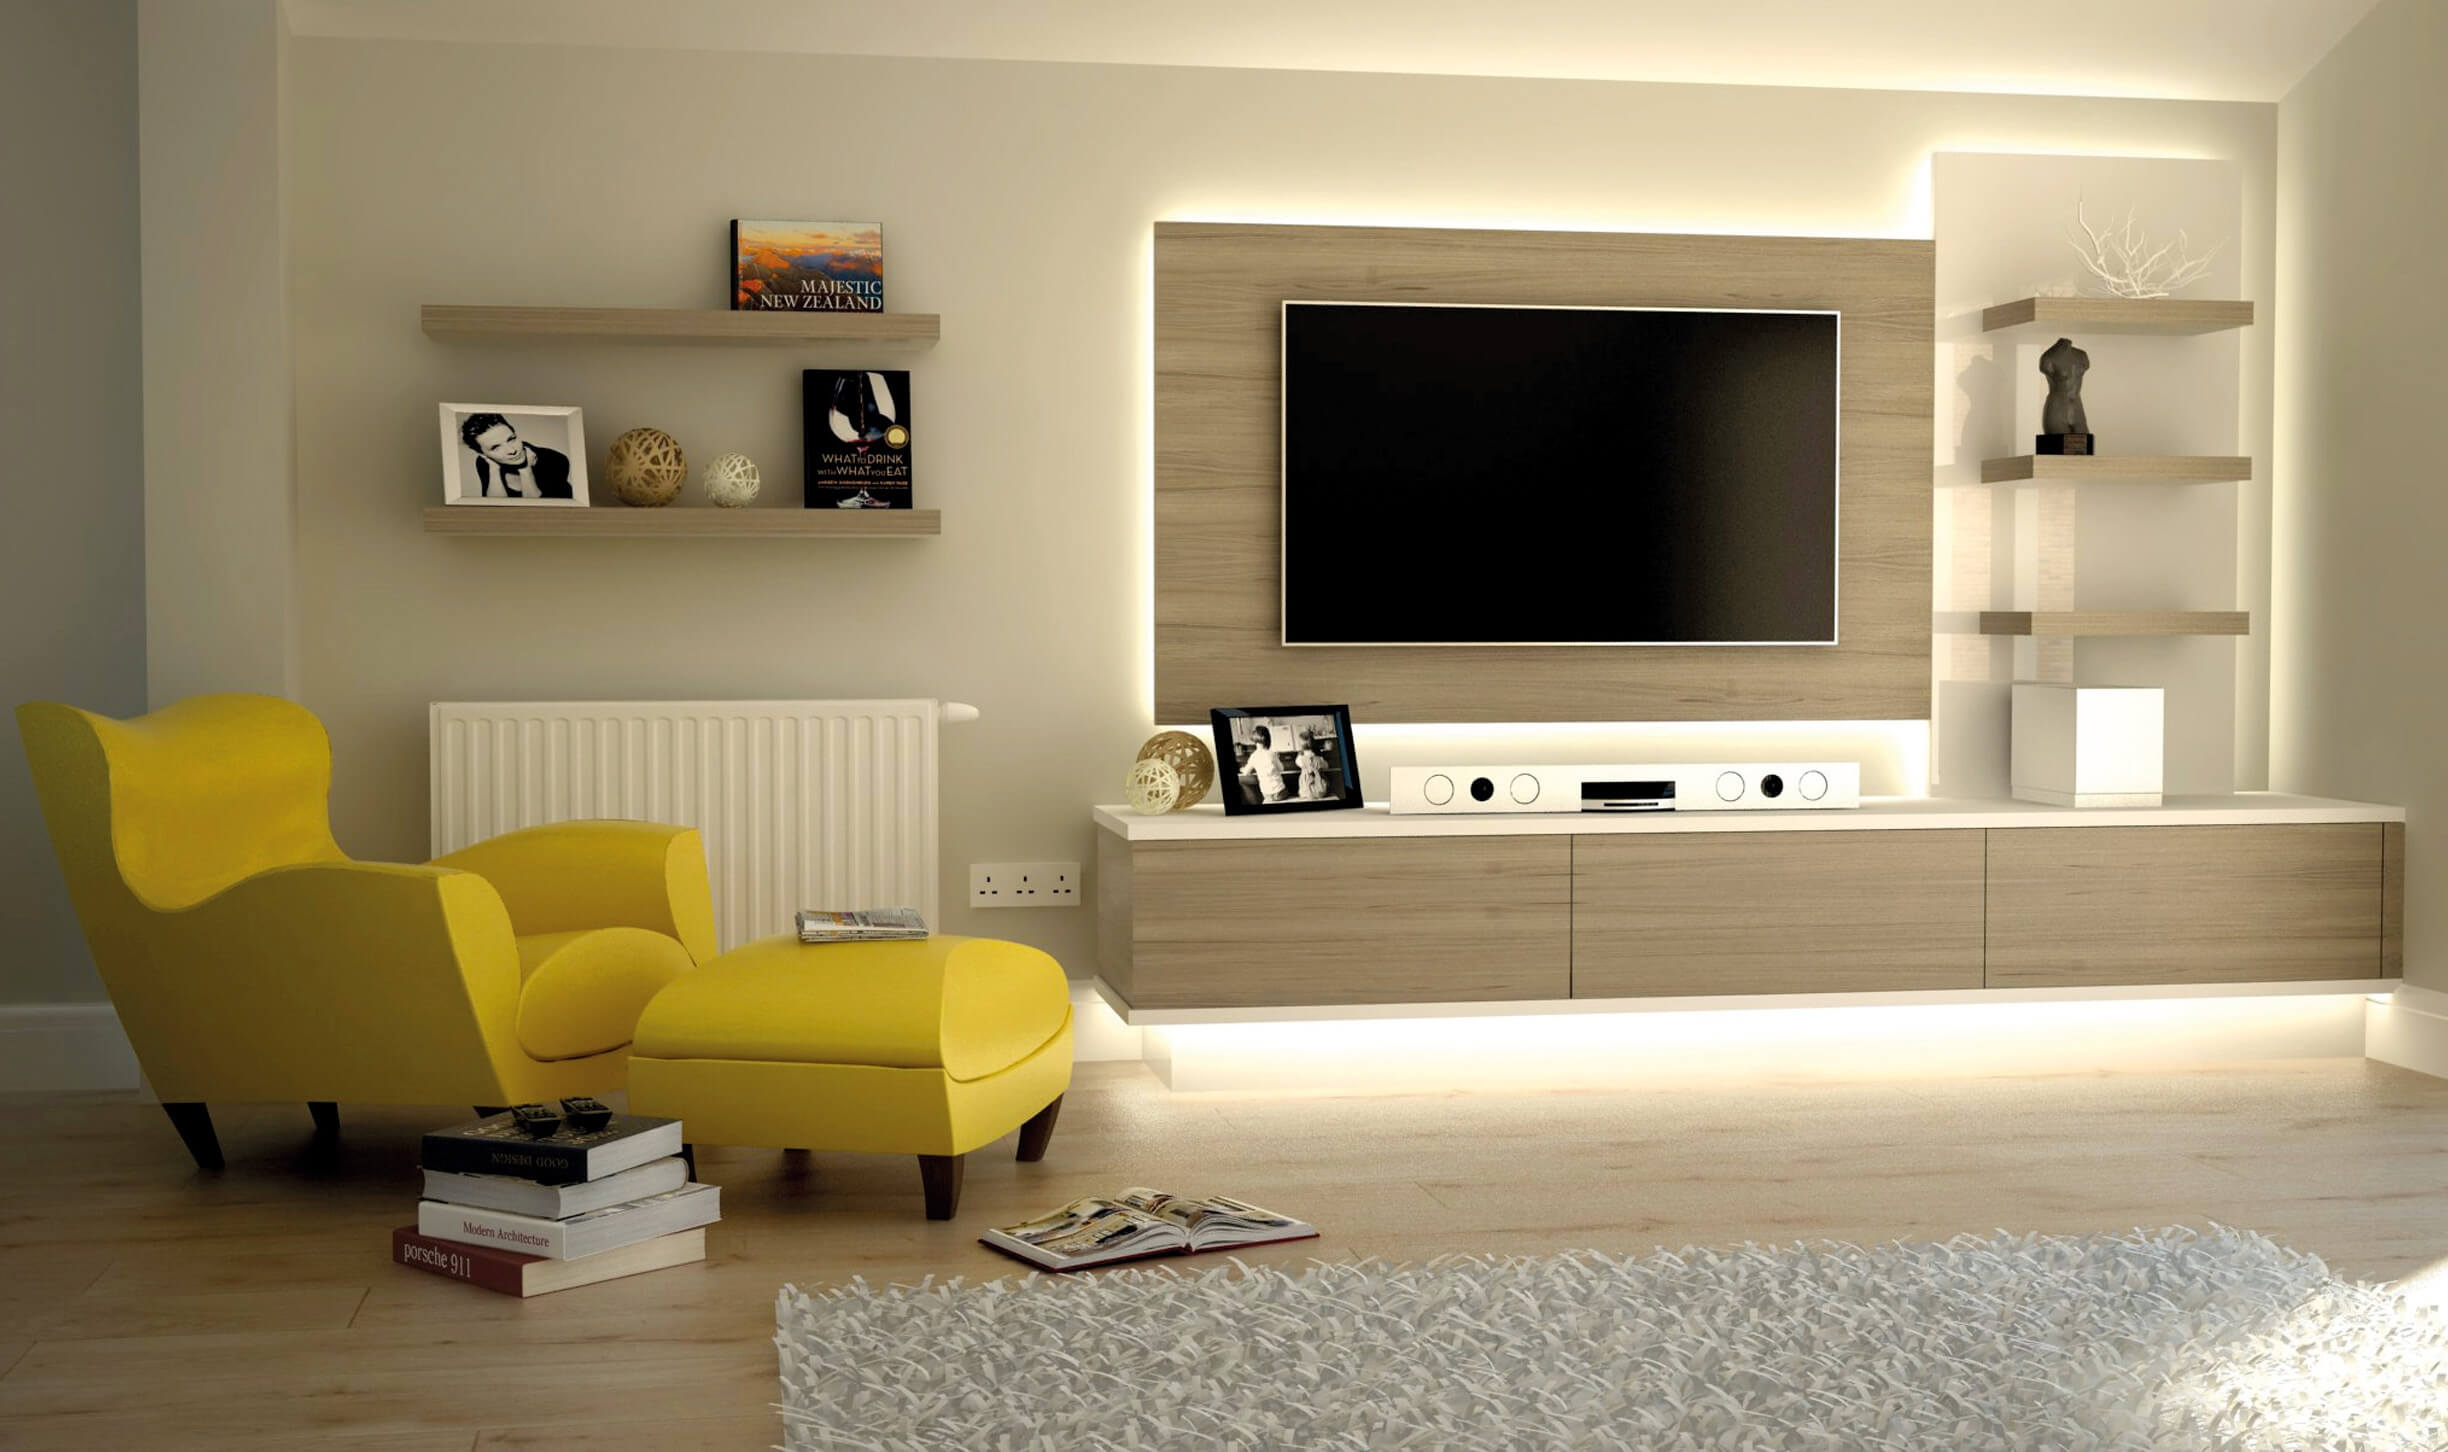 Bespoke Tv Cabinets Bookcases And Storage Units For Over 50 With Regard To Fitted Living Room Cabinets (View 2 of 15)